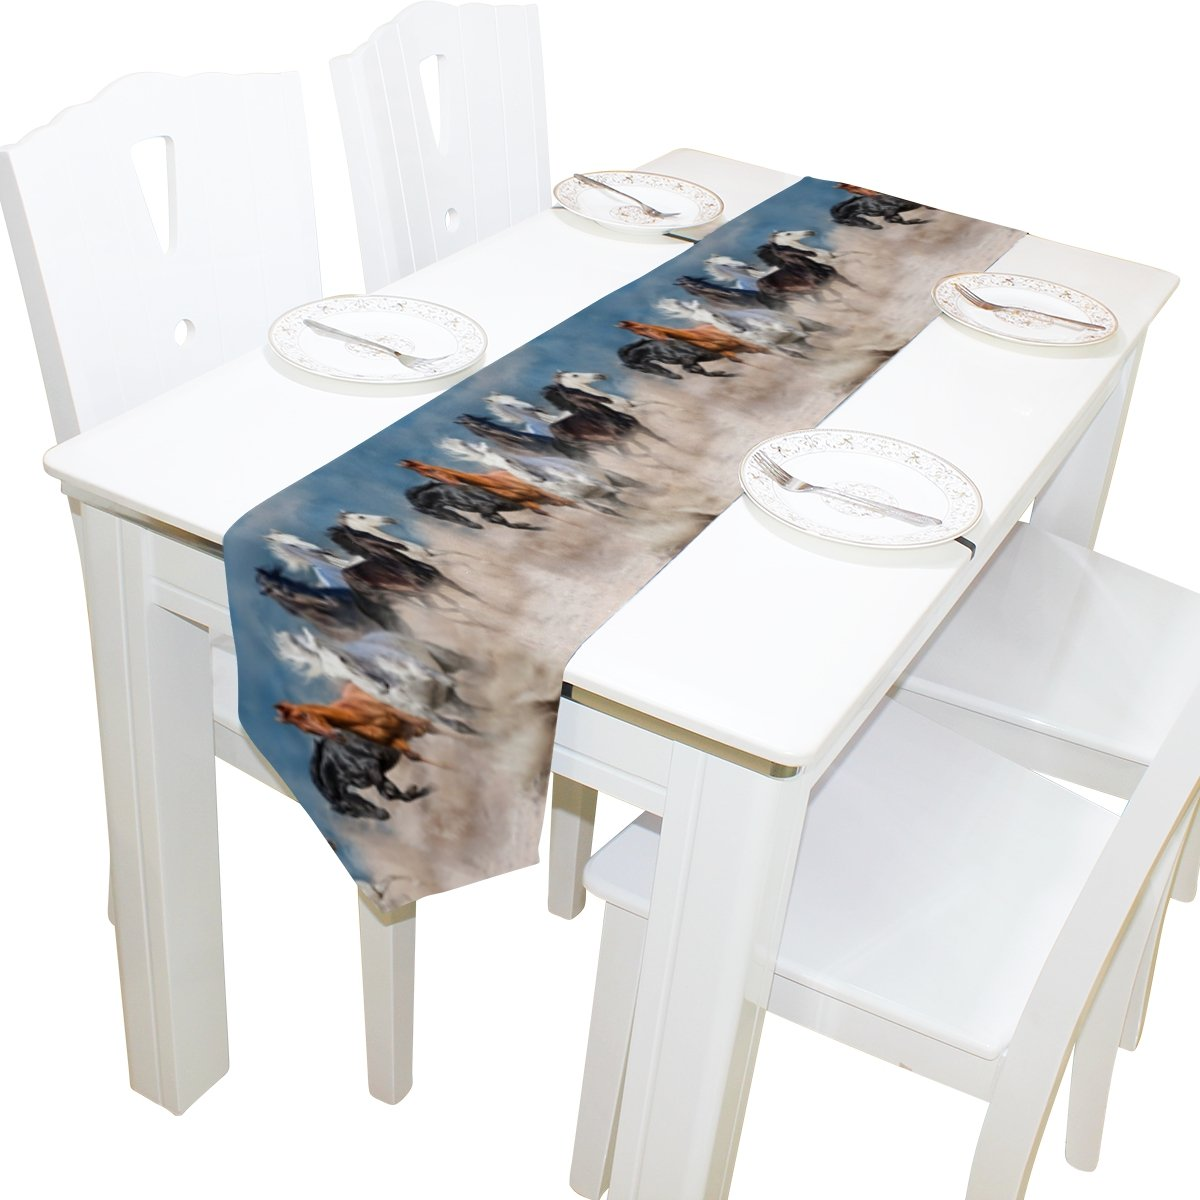 Naanle Animal Horse Long Table Runner 13x70 Inch, Horse Herd Running in Desert Storm Polyester Table Cloth Runner for Kitchen Wedding Party Decoration